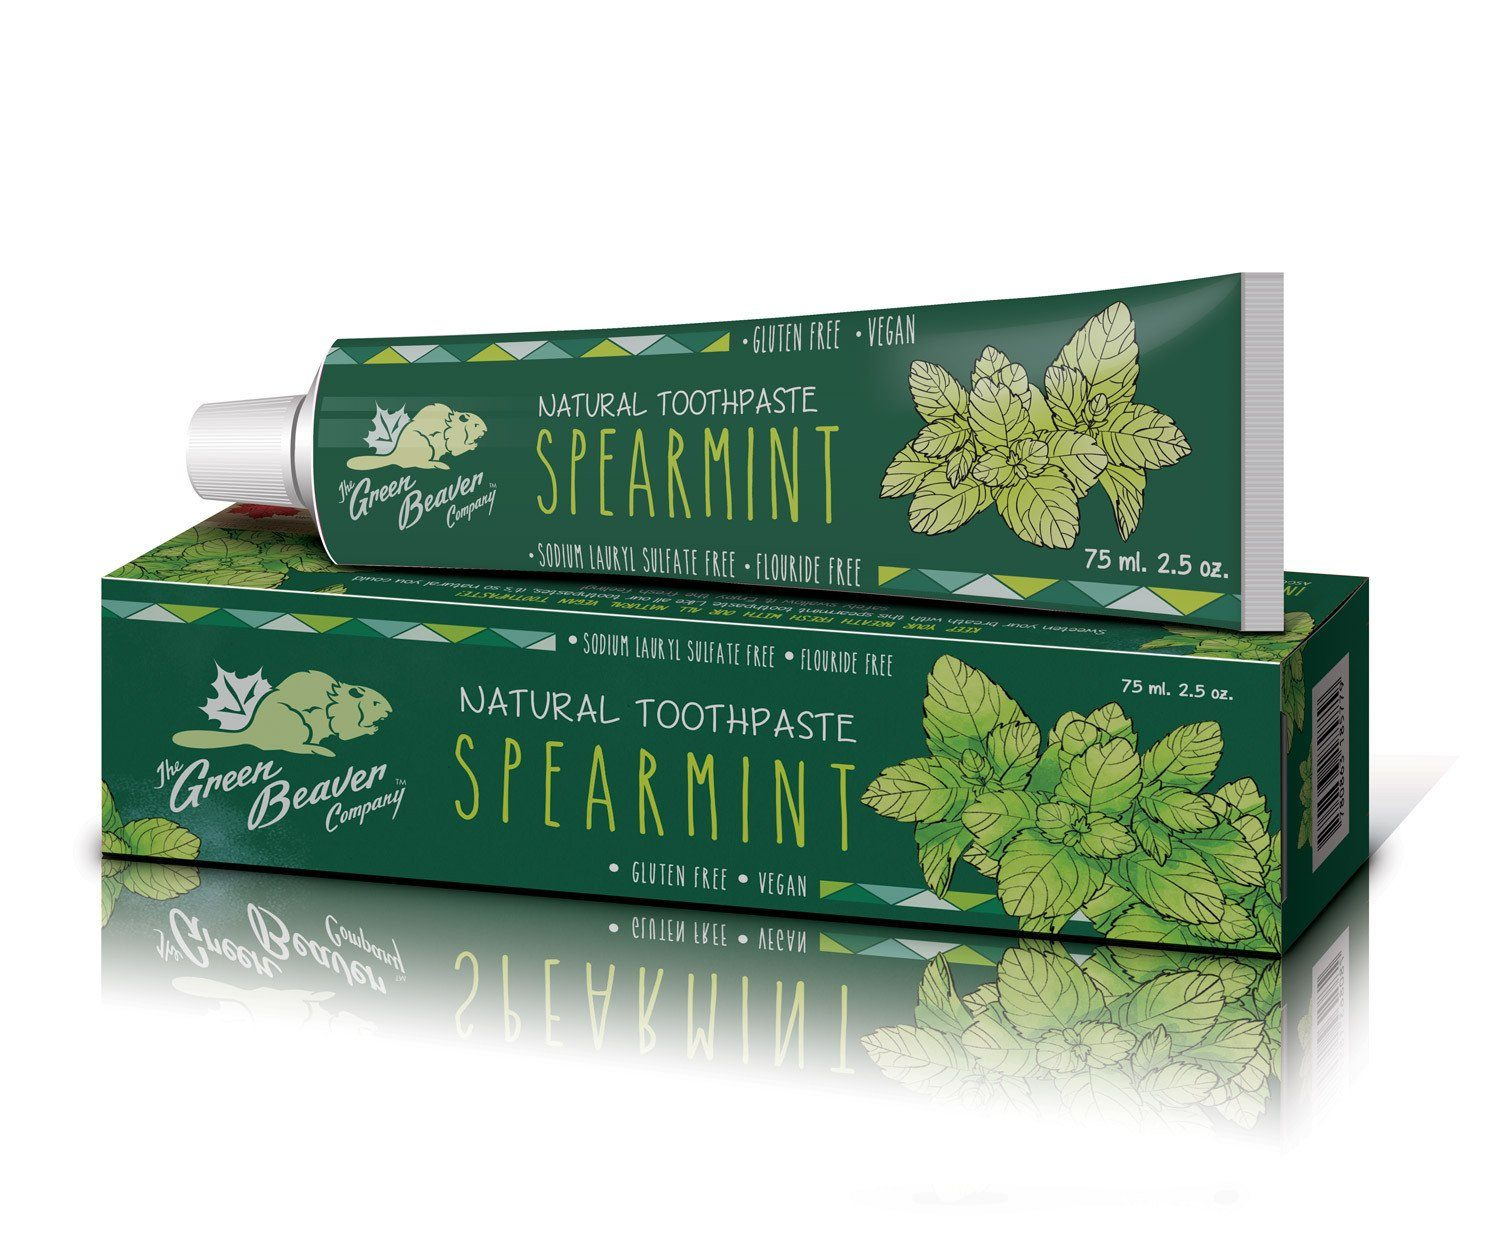 Personal Care - Green Beaver - Spearmint Toothpaste, 75 Ml